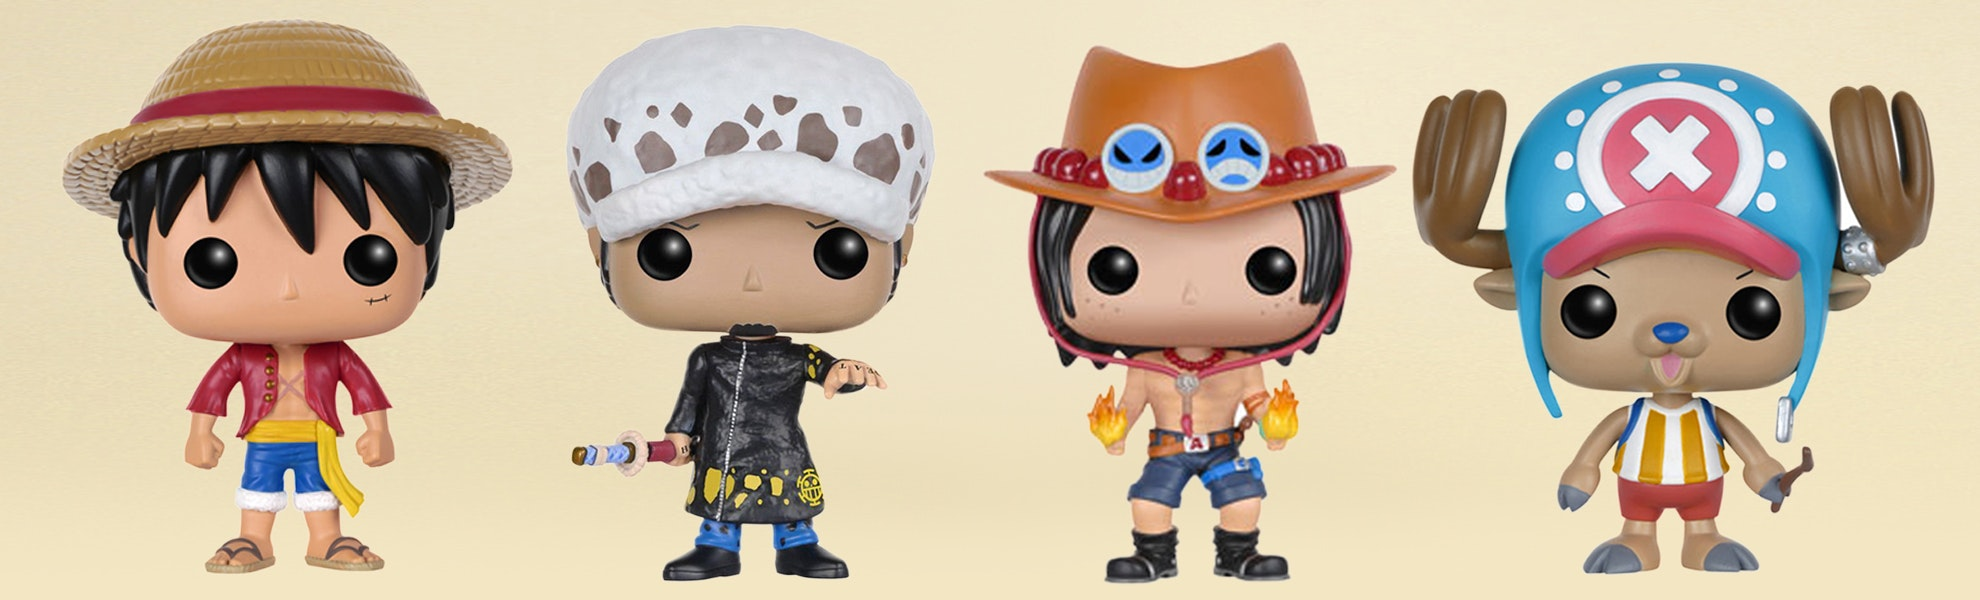 POP! Animation: One Piece Figures Set (2-Pack)